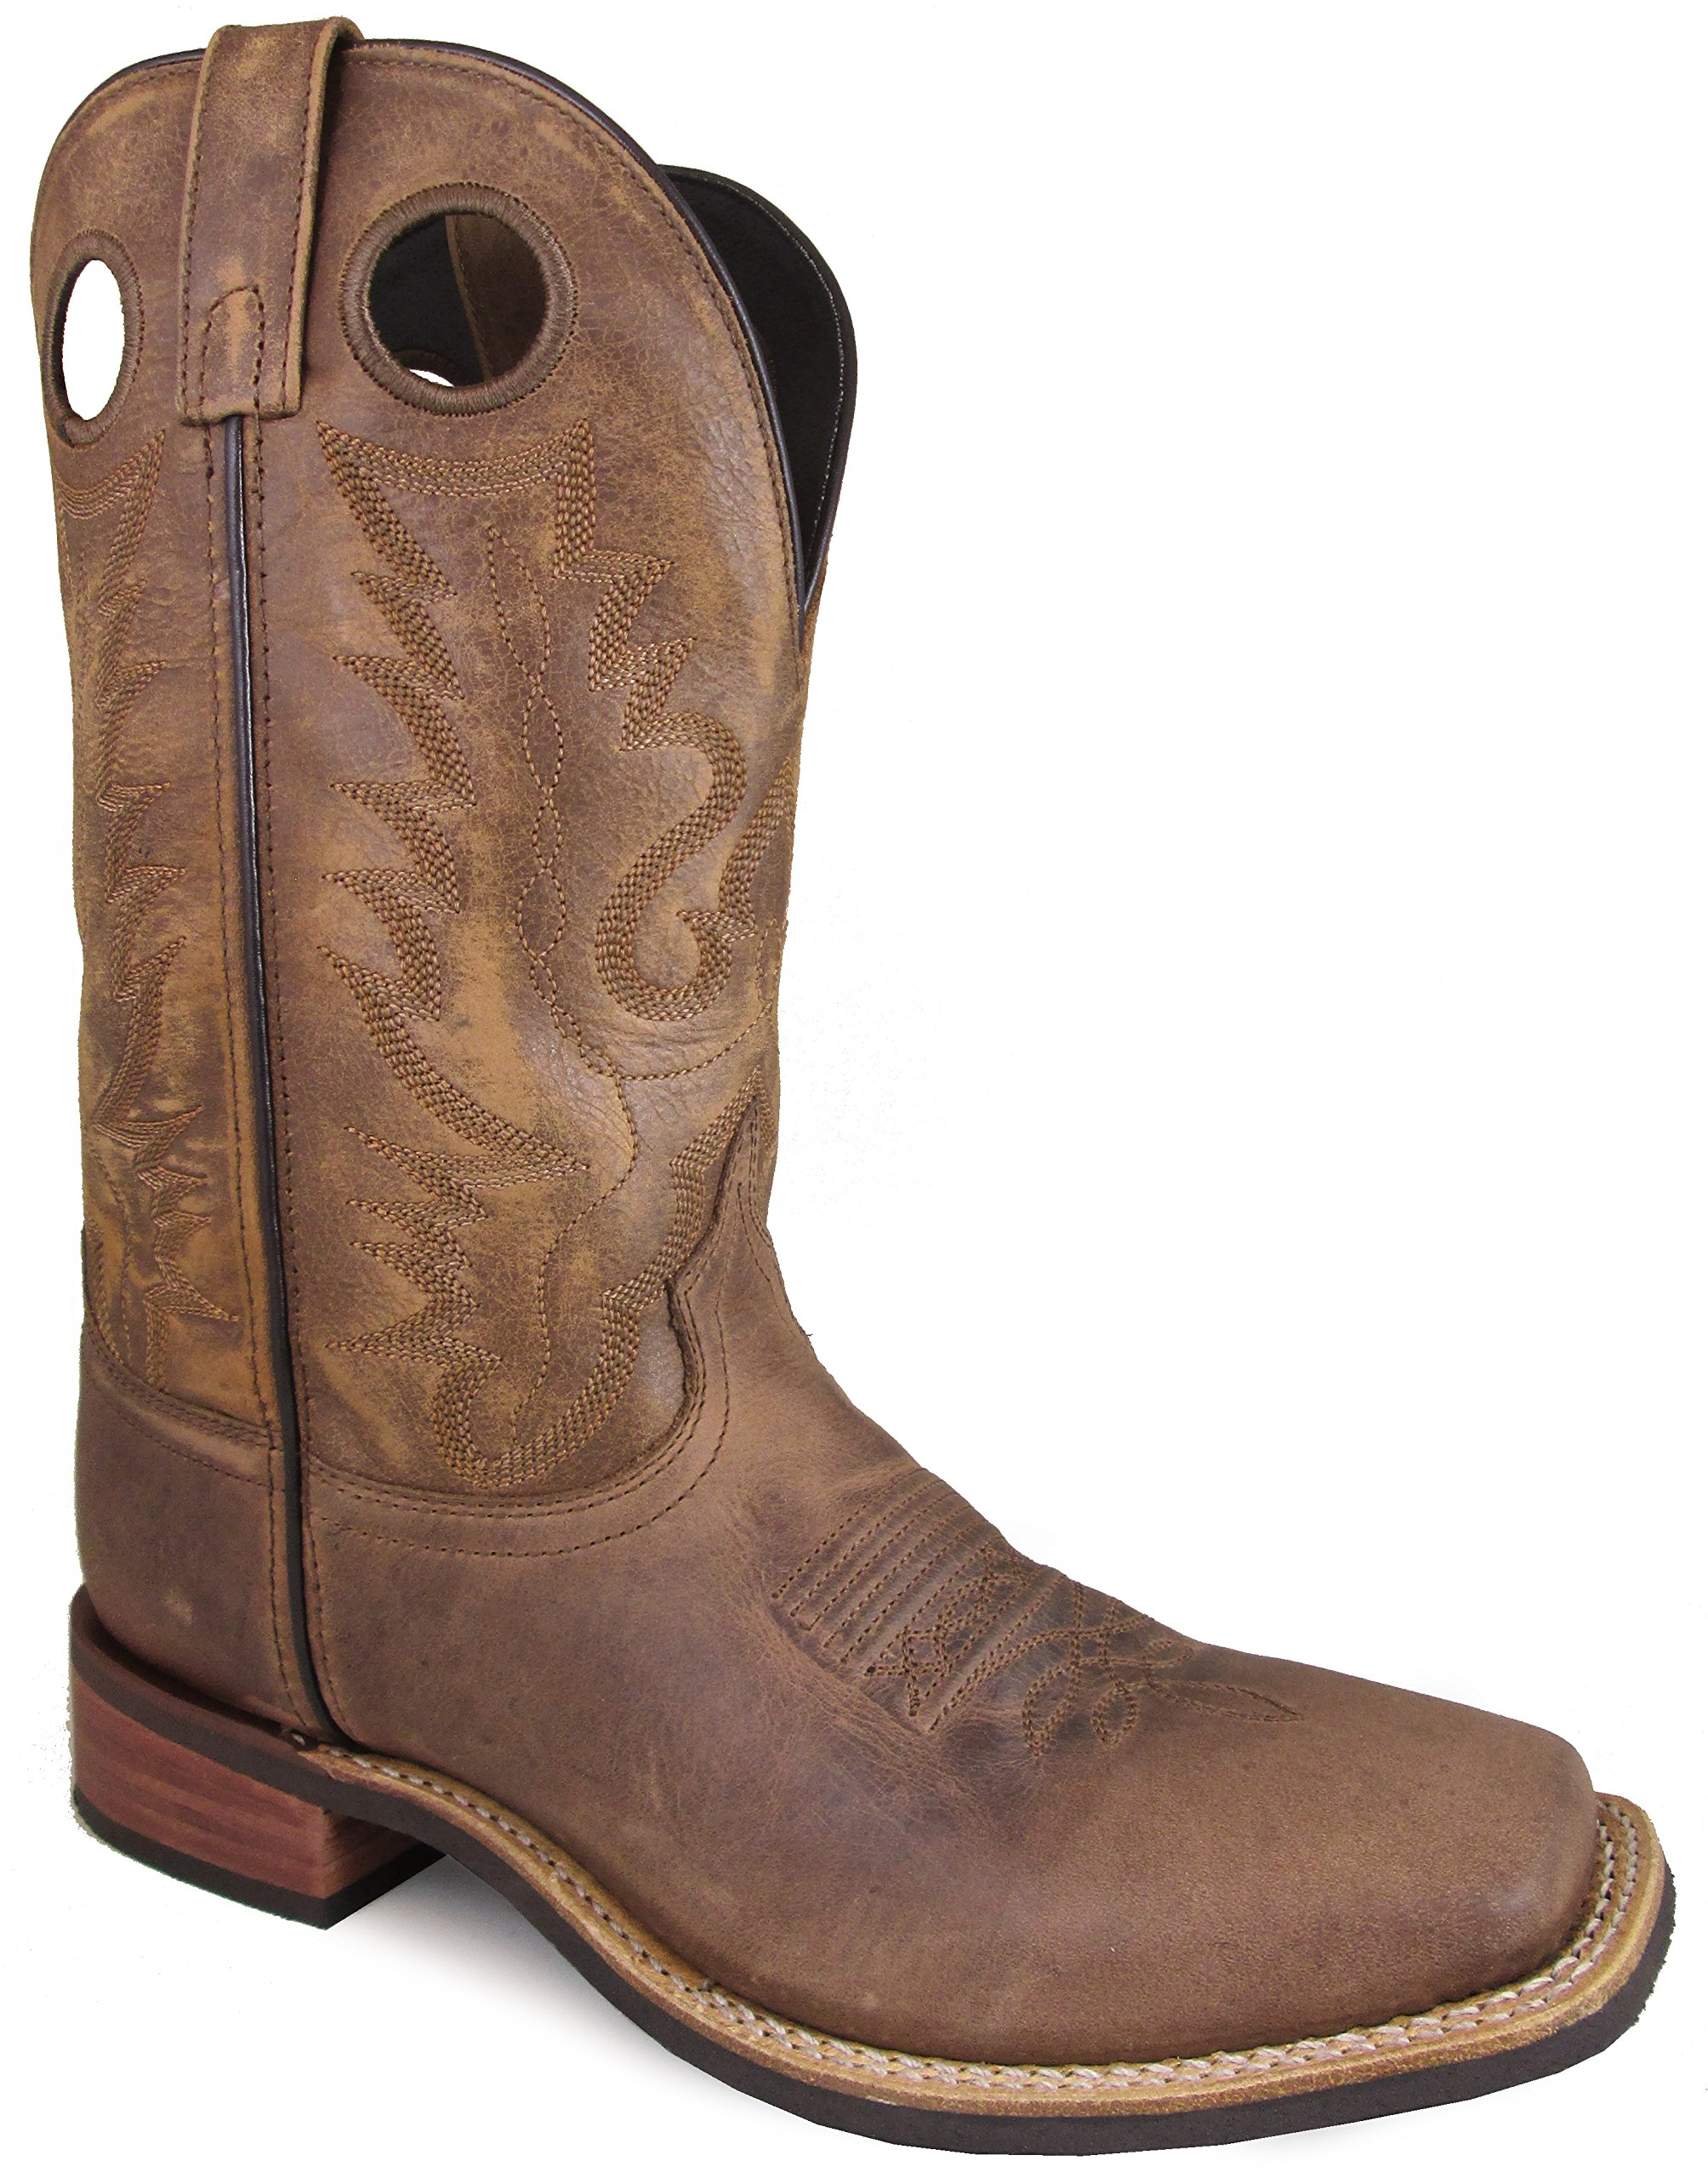 Smoky Mountain Men's Timber Pull On Closure Stitched Design Square Toe Brown Distress Boots 9.5D by Smoky Mountain Boots